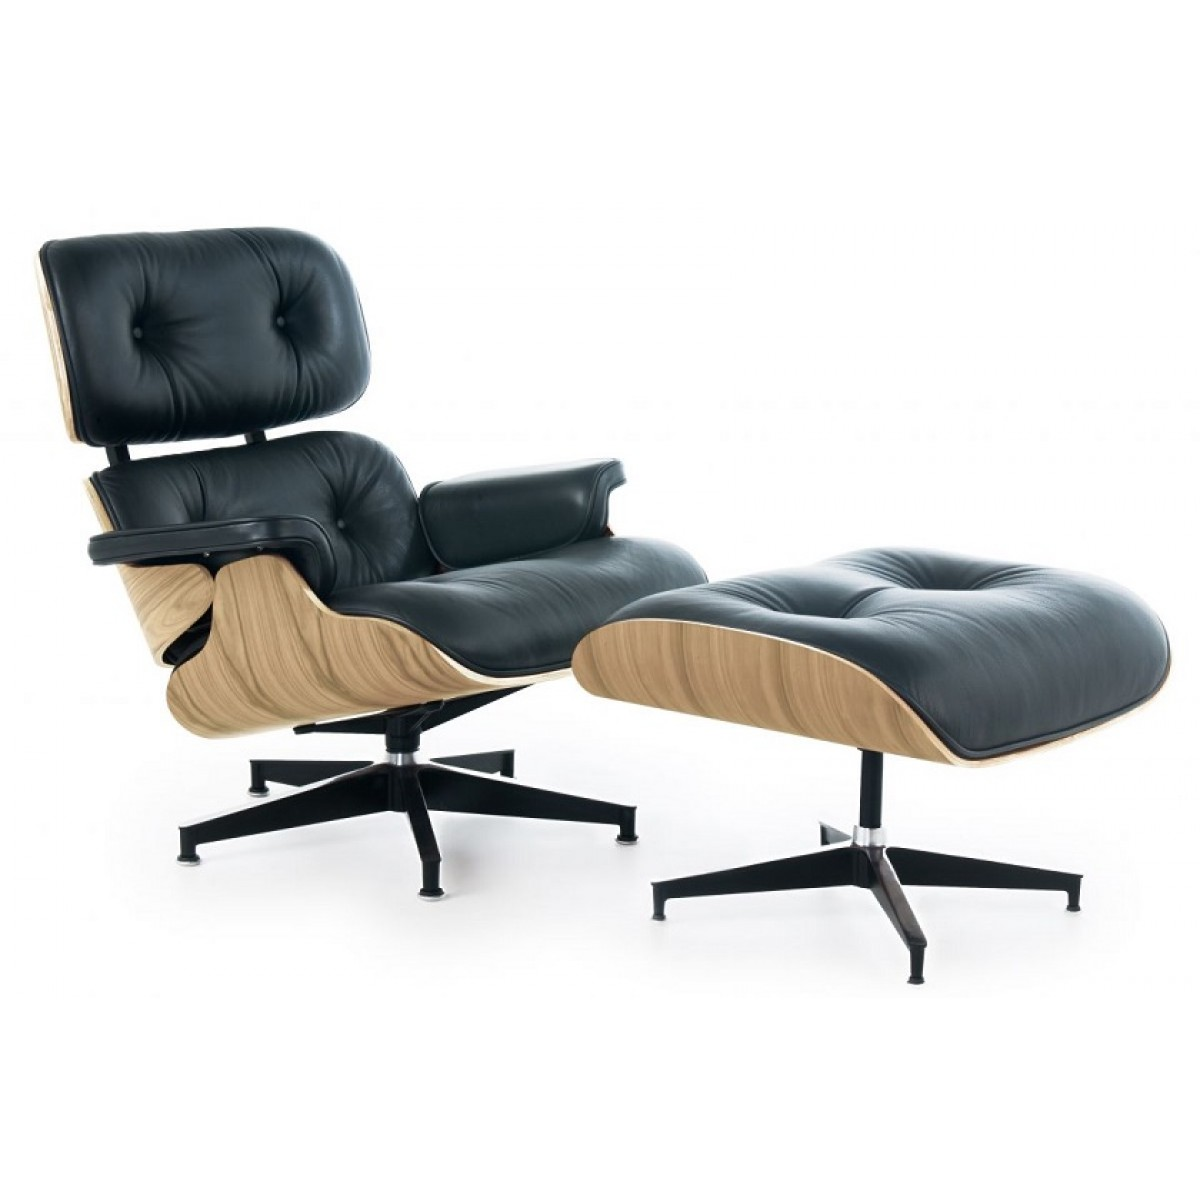 Swell Herman Miller Plywood Lounge Chair Eames Lounge Chair Unemploymentrelief Wooden Chair Designs For Living Room Unemploymentrelieforg